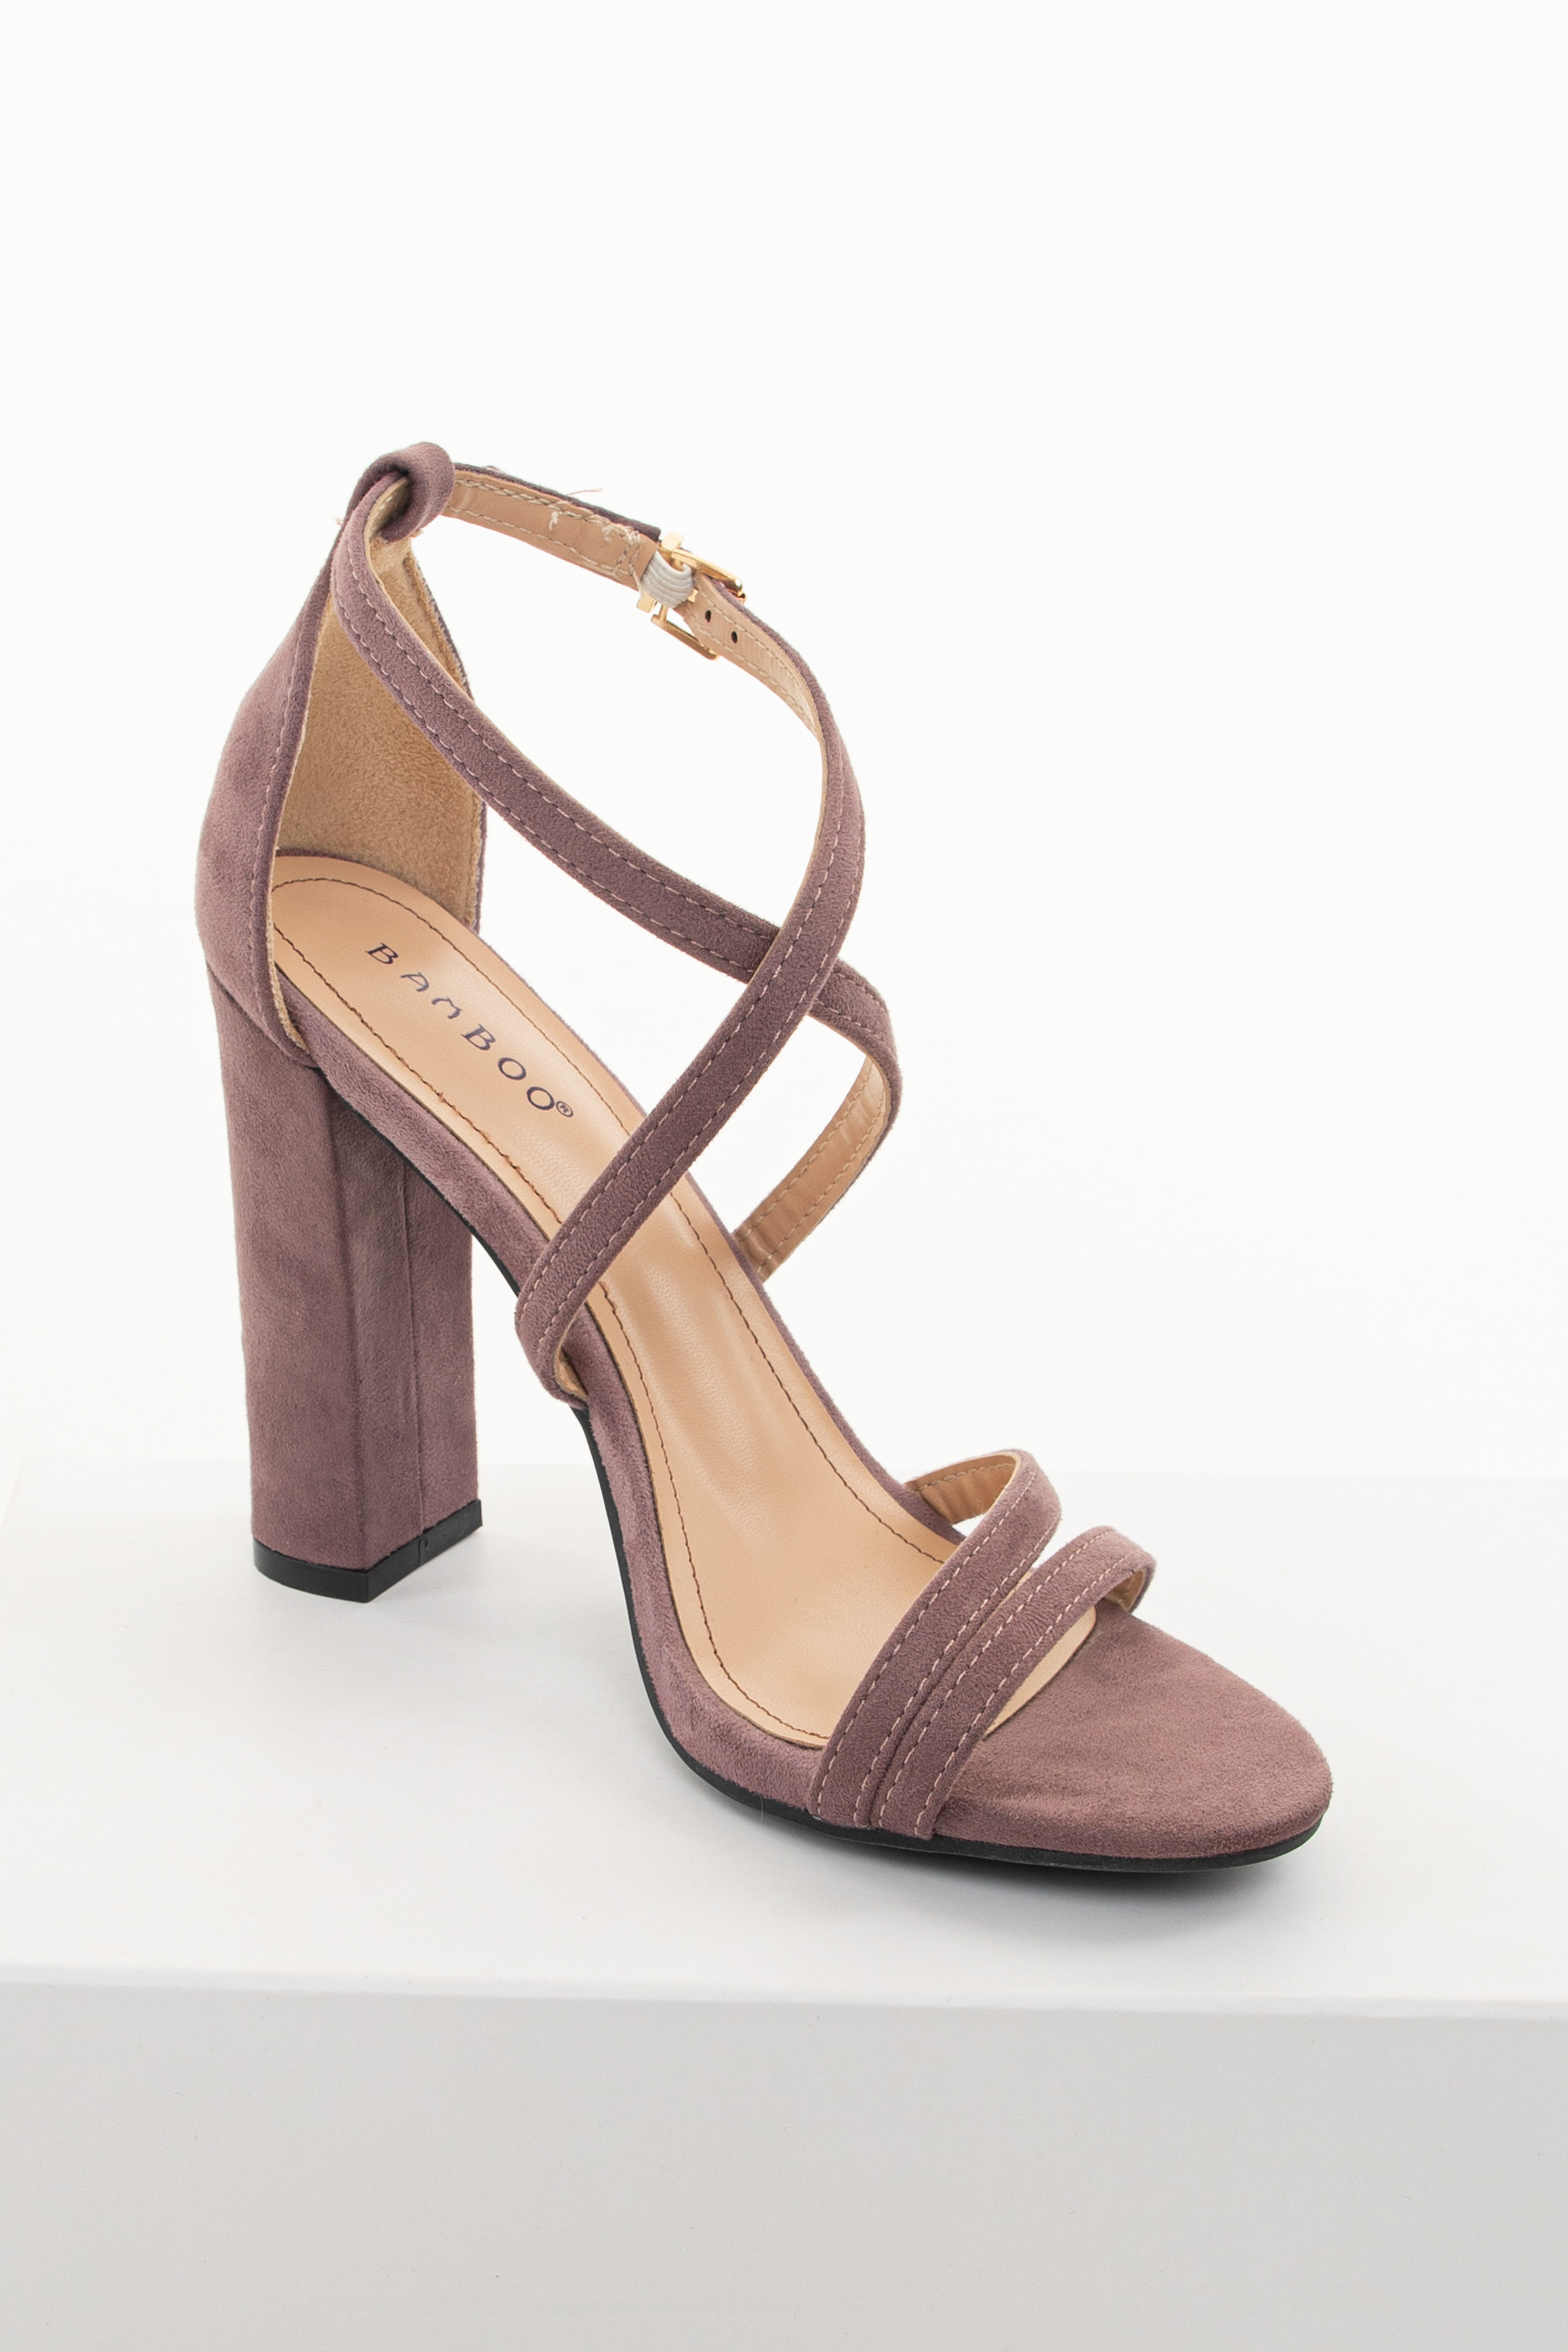 Lilac Faux Suede Chunky Heels with Strap and Buckle Details